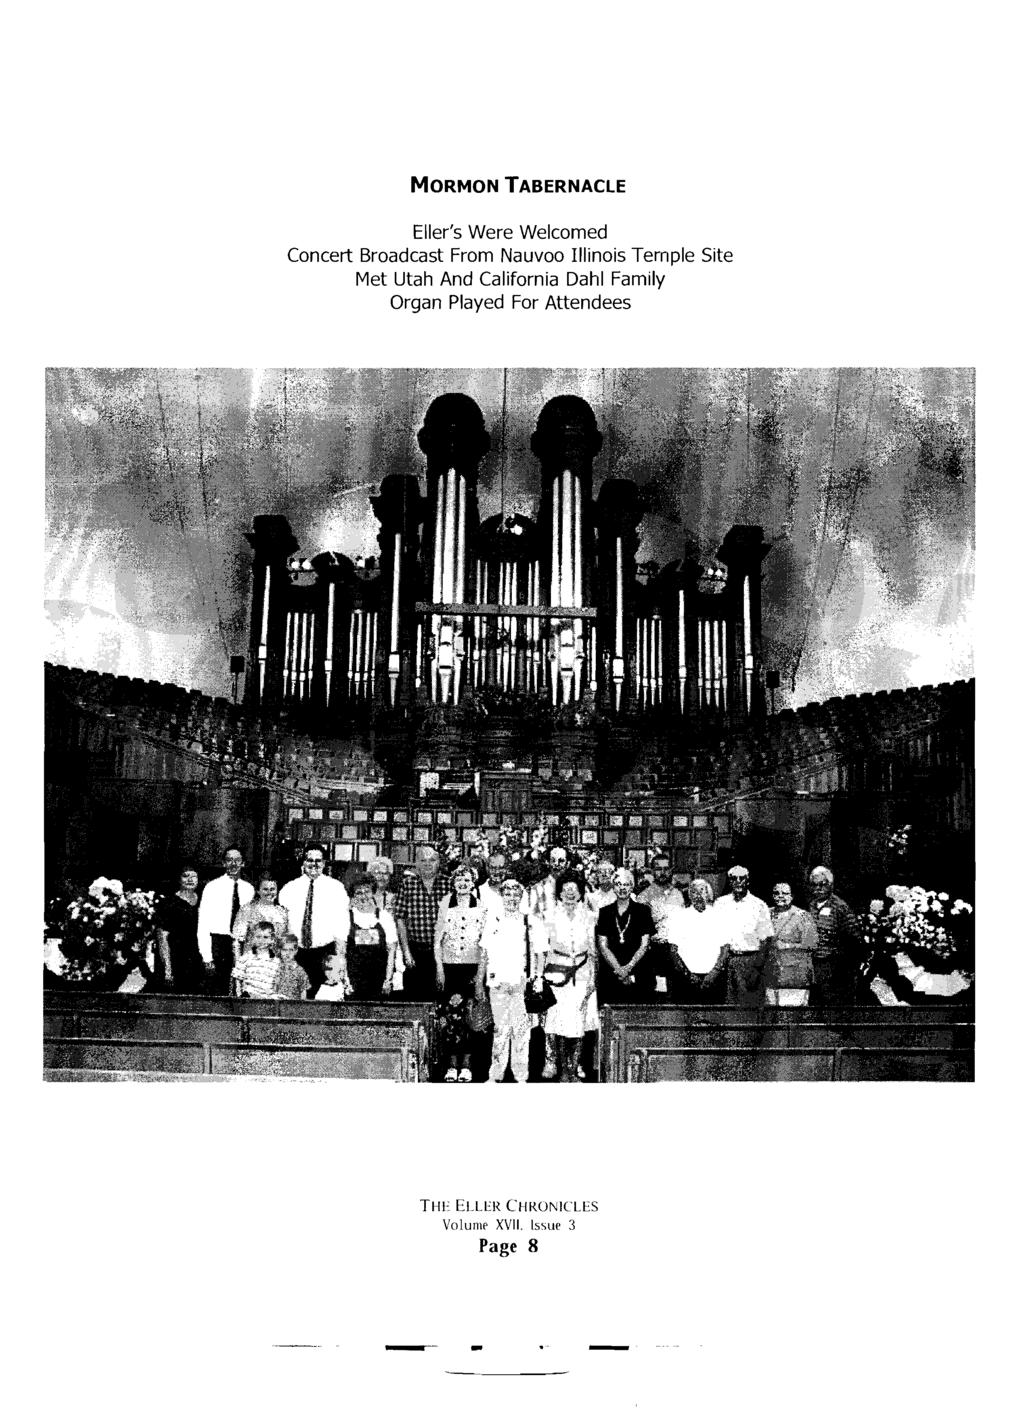 MORMON TABERNACLE Eller's Were Welcomed Concert Broadcast From Nauvoo Illinois Temple Site